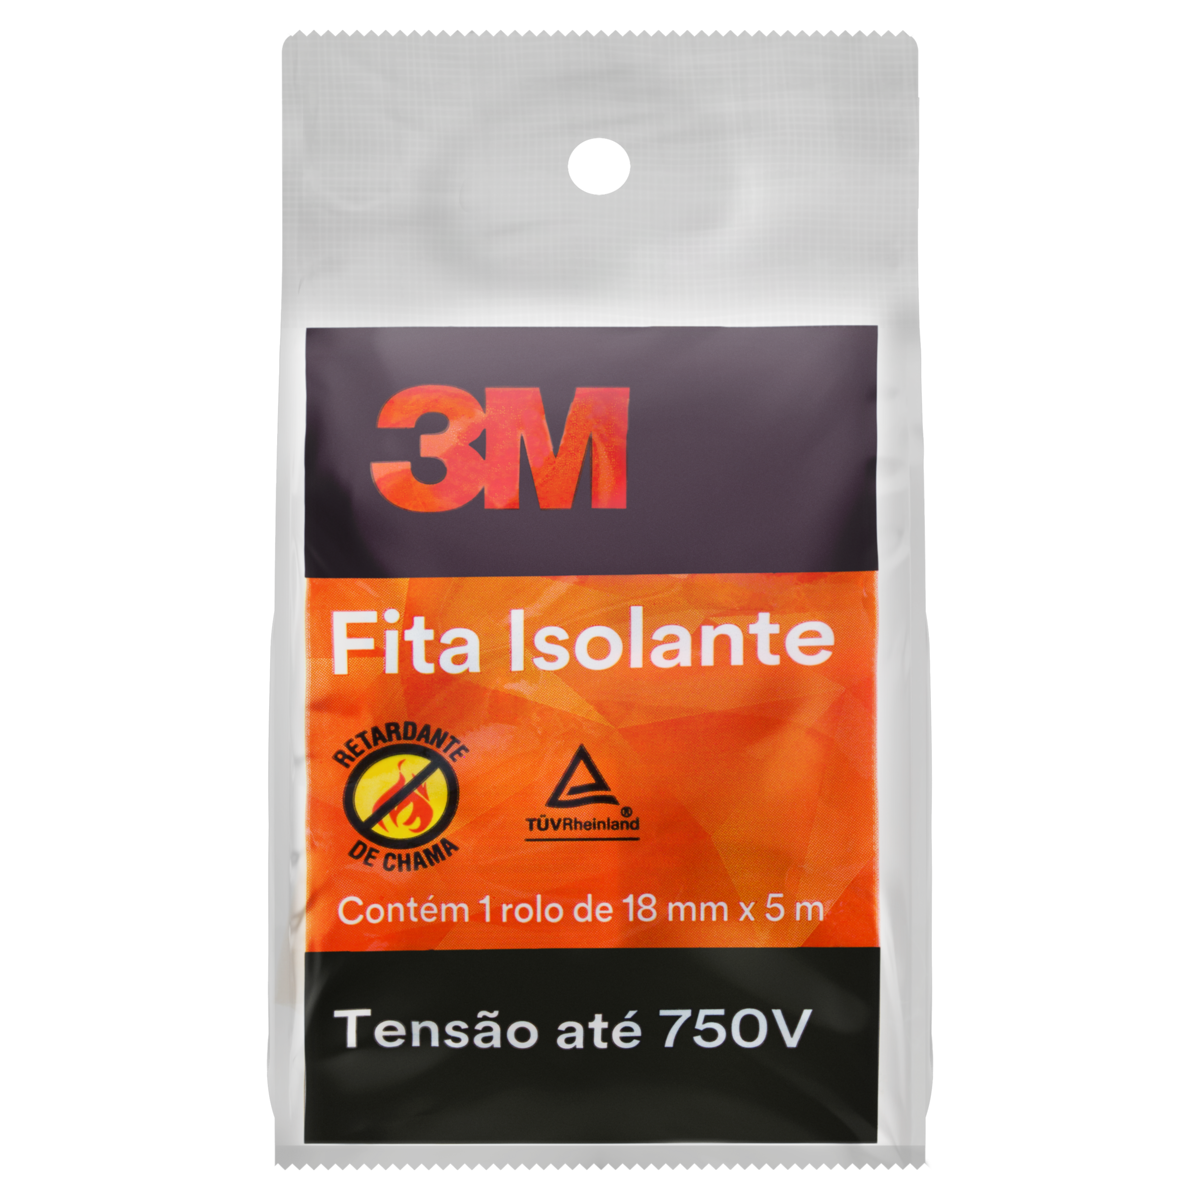 7891040125456 - FITA ISOLANTE 750V 3M 18MM X 5M